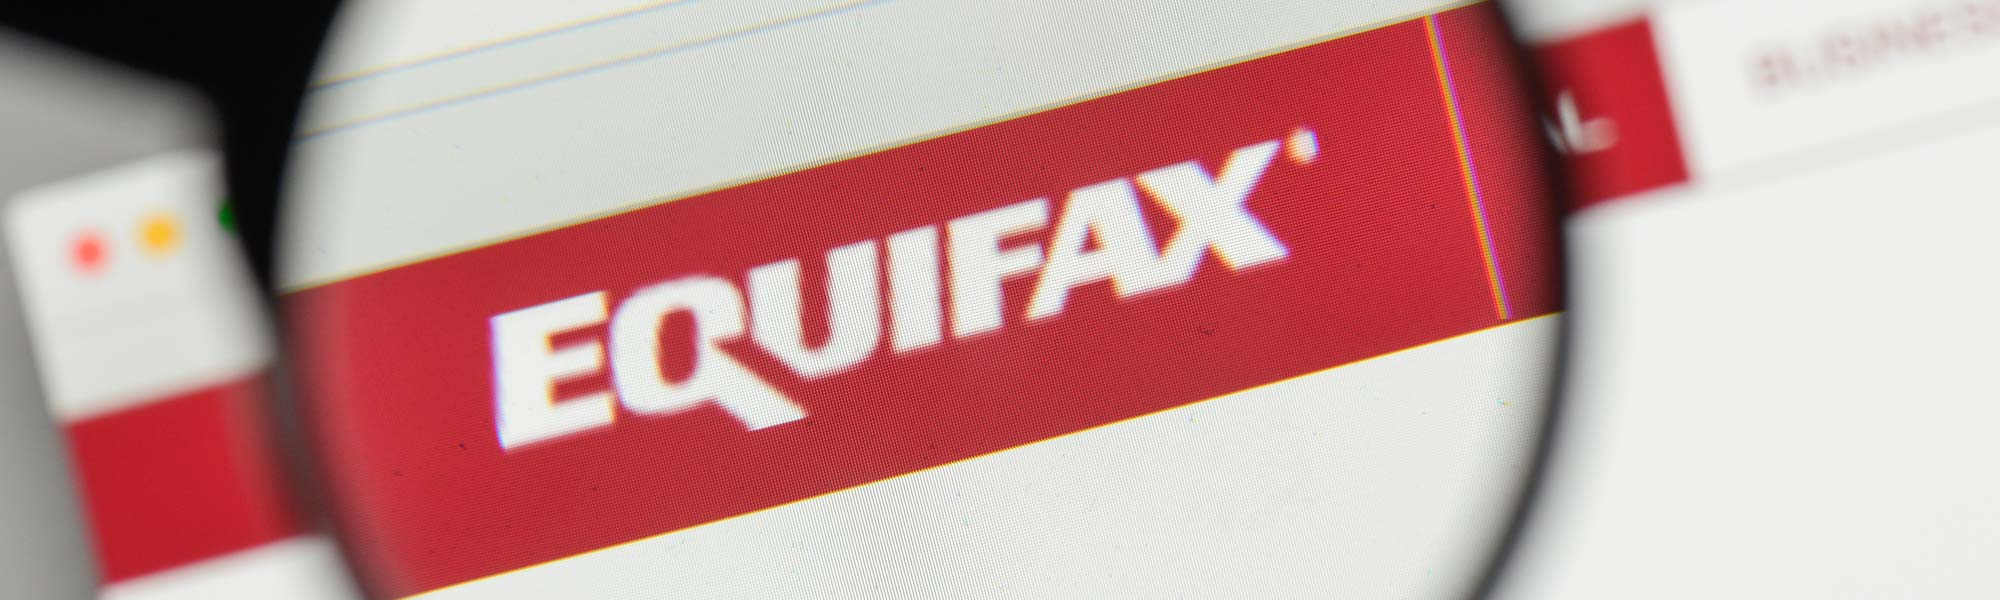 Equifax Canada Co. and Equifax Inc.